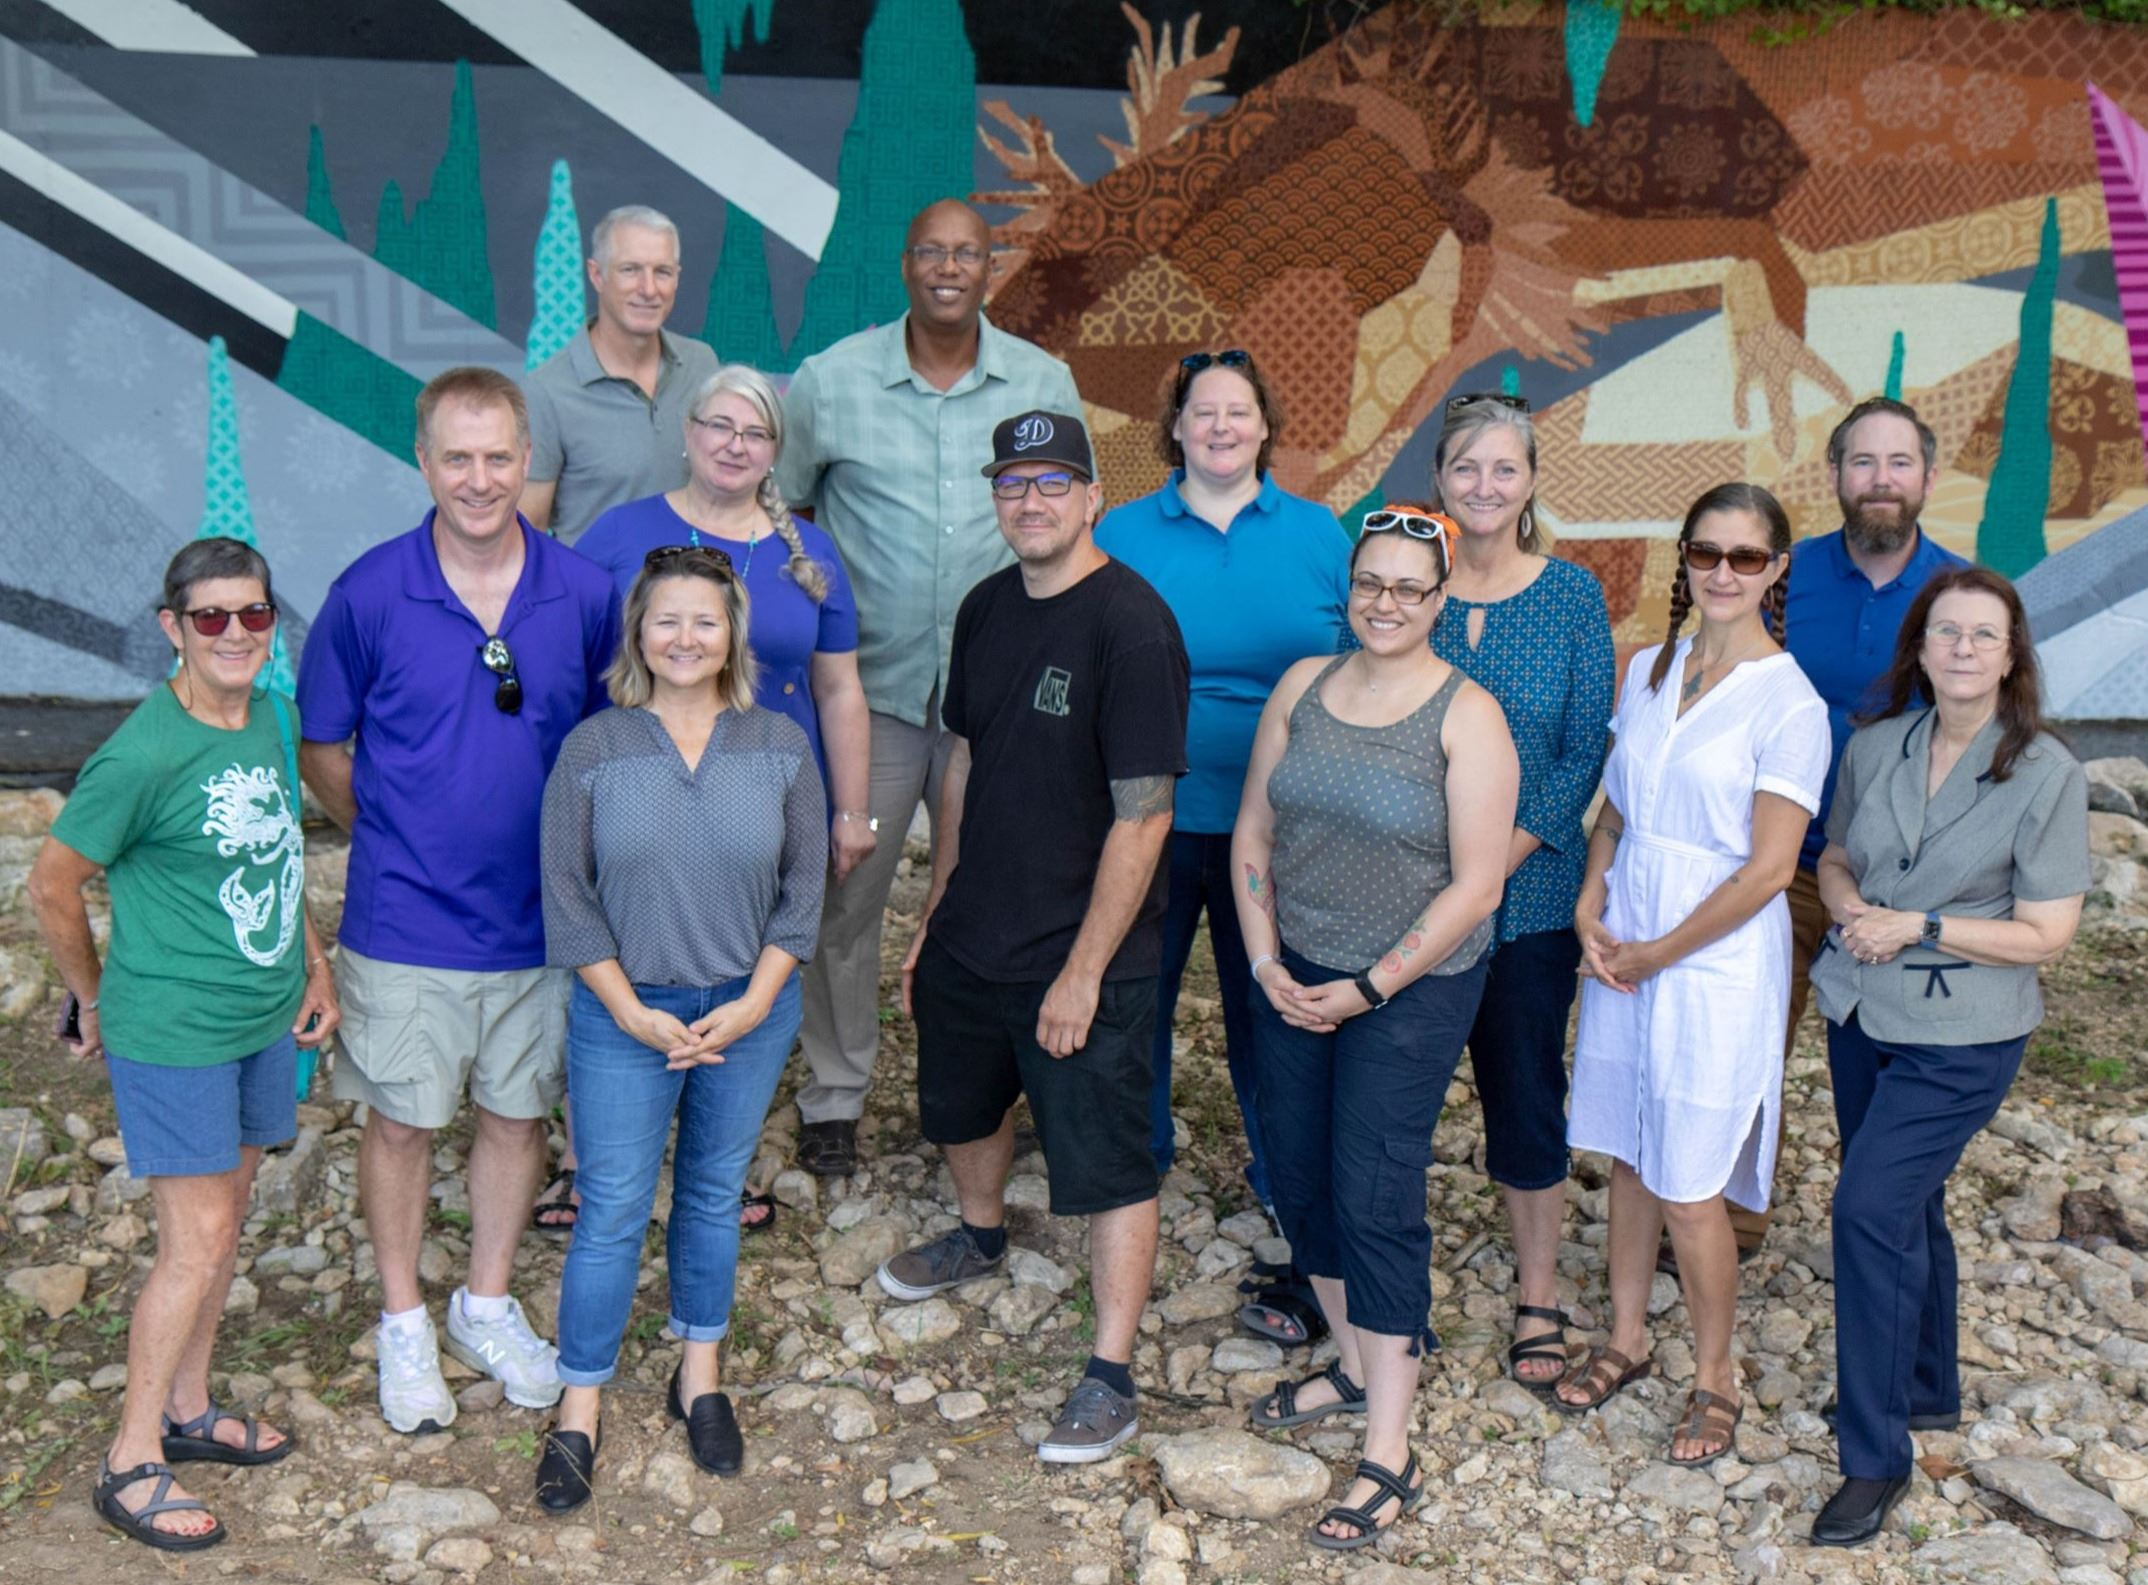 People from community standing in front of Sessom Drive Mural. Front row from left are Pam Dever, Jo